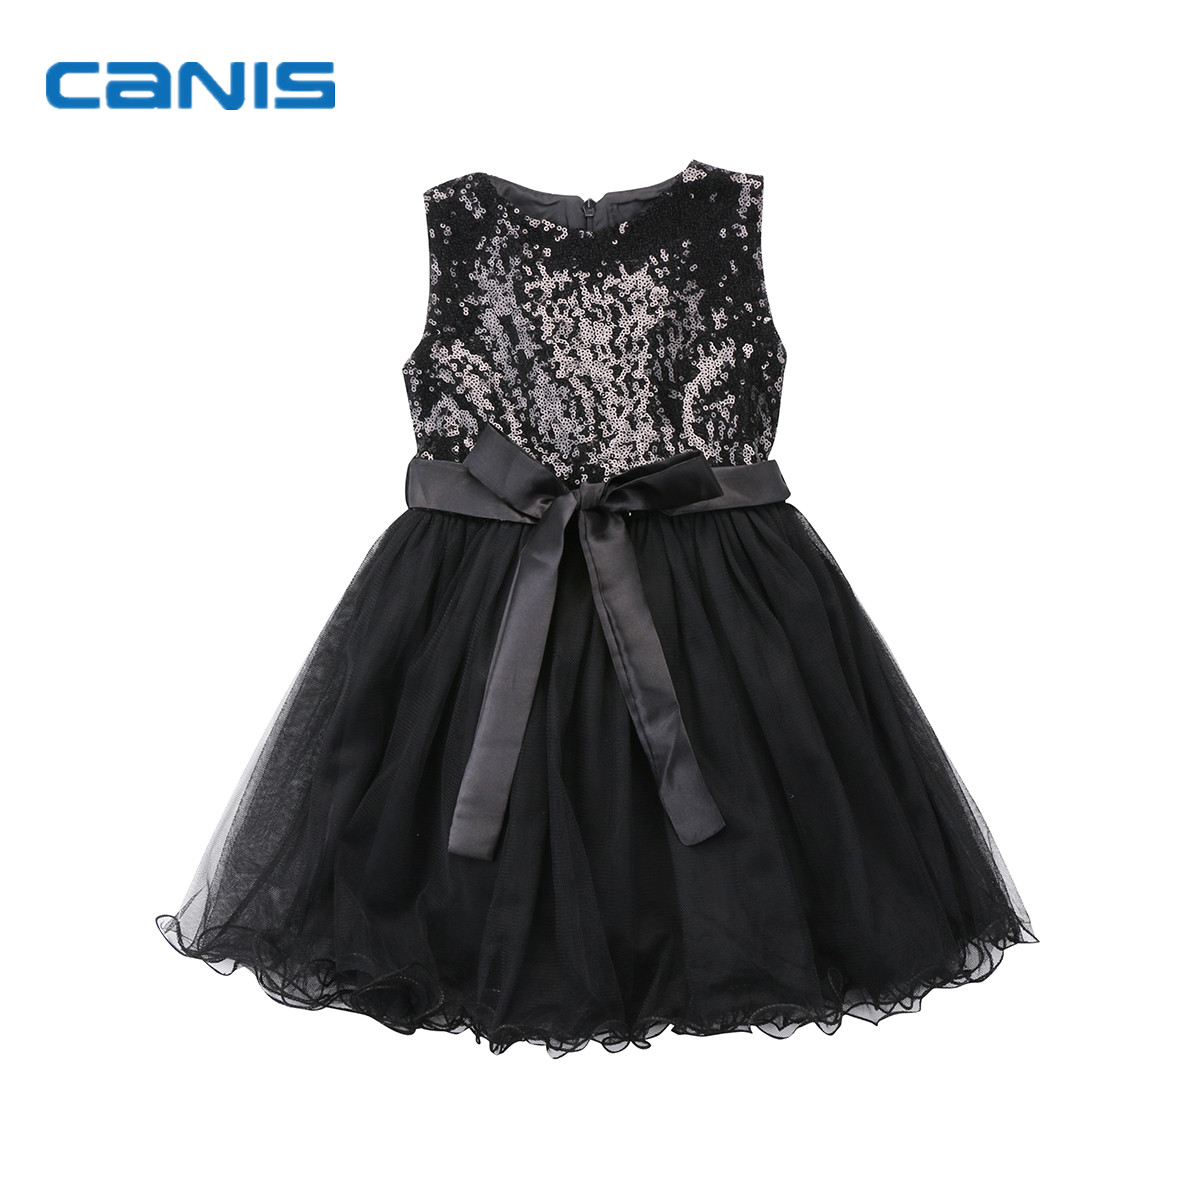 2018 Brand New Toddler Infant Child Flower Girl Kids Tutu Dress Sequin Princess Party Wedding Bridesmaid Tulle Gown Formal Dress kids girls bridesmaid wedding toddler baby girl princess dress sleeveless sequin flower prom party ball gown formal party xd24 c